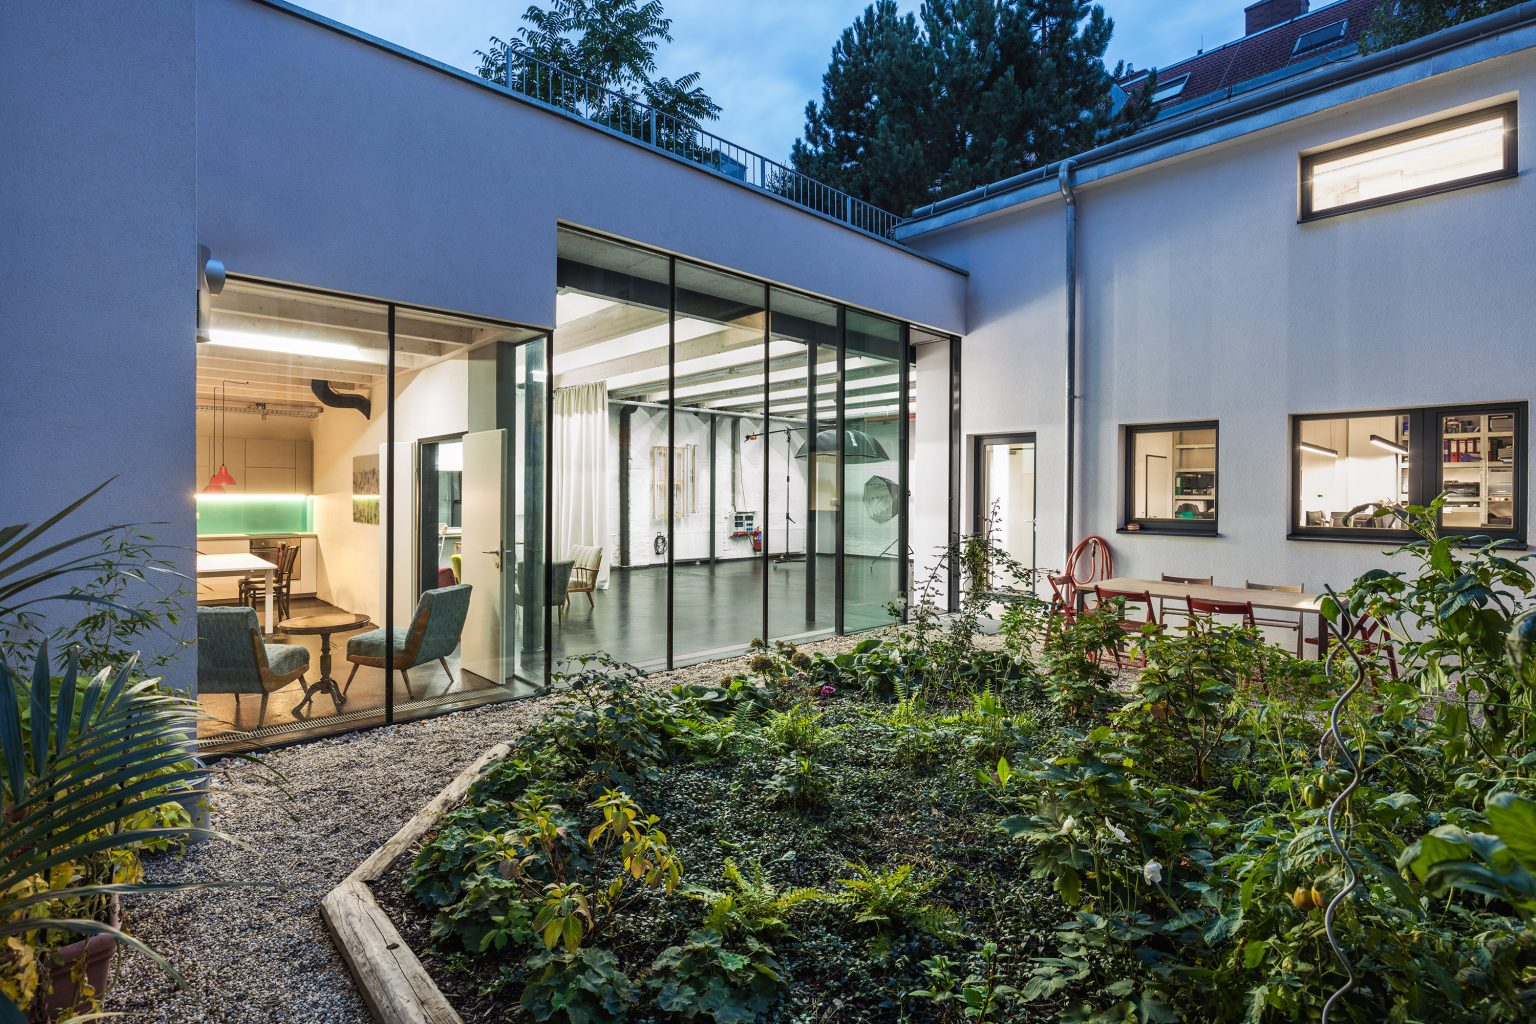 Das Shared office Studio Totale in Wien mit Garten